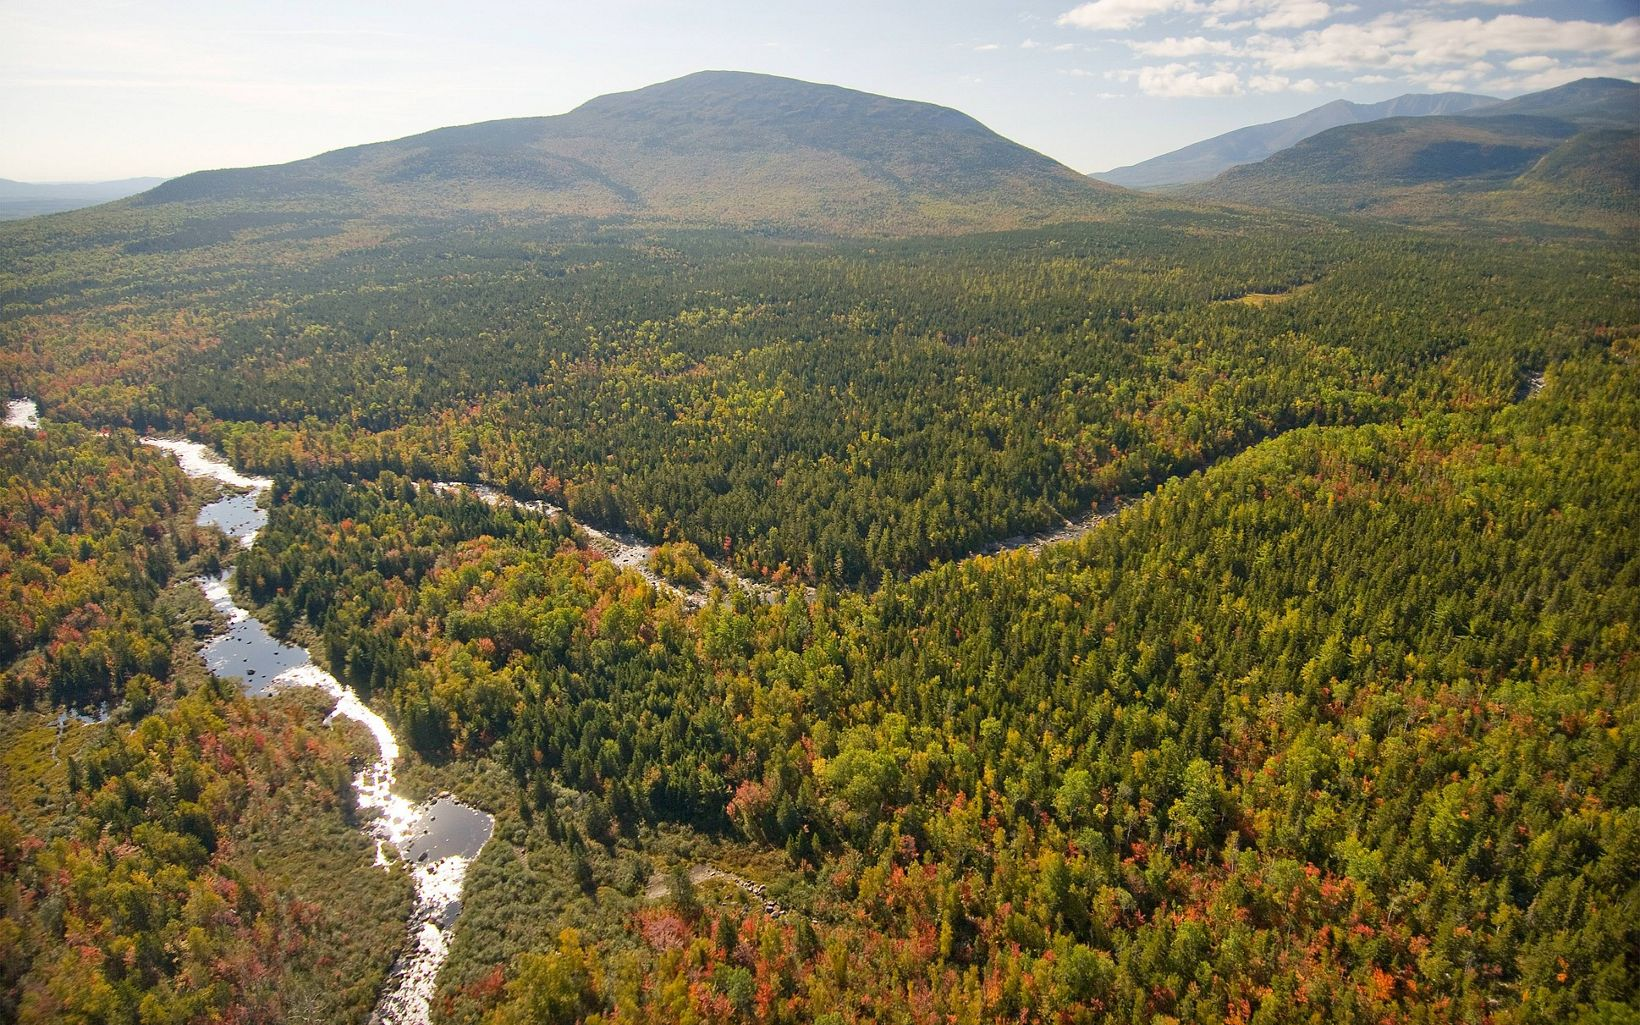 West Branch of the Penobscot River and tributaries as it winds to the southeast of Mount Katahdin.